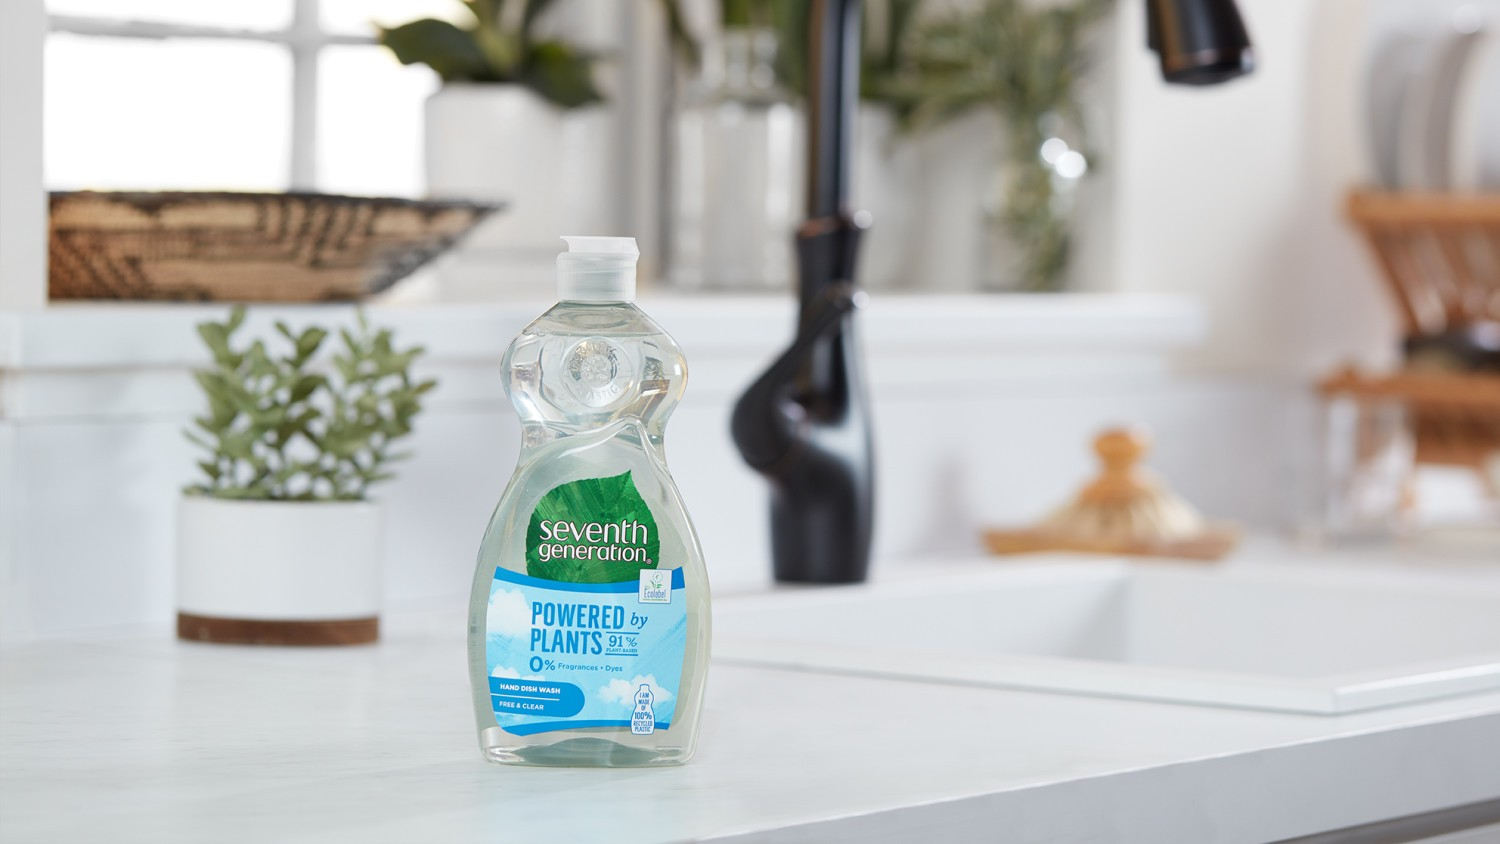 Seventh Generation Washing up liquid on the kitchen counter